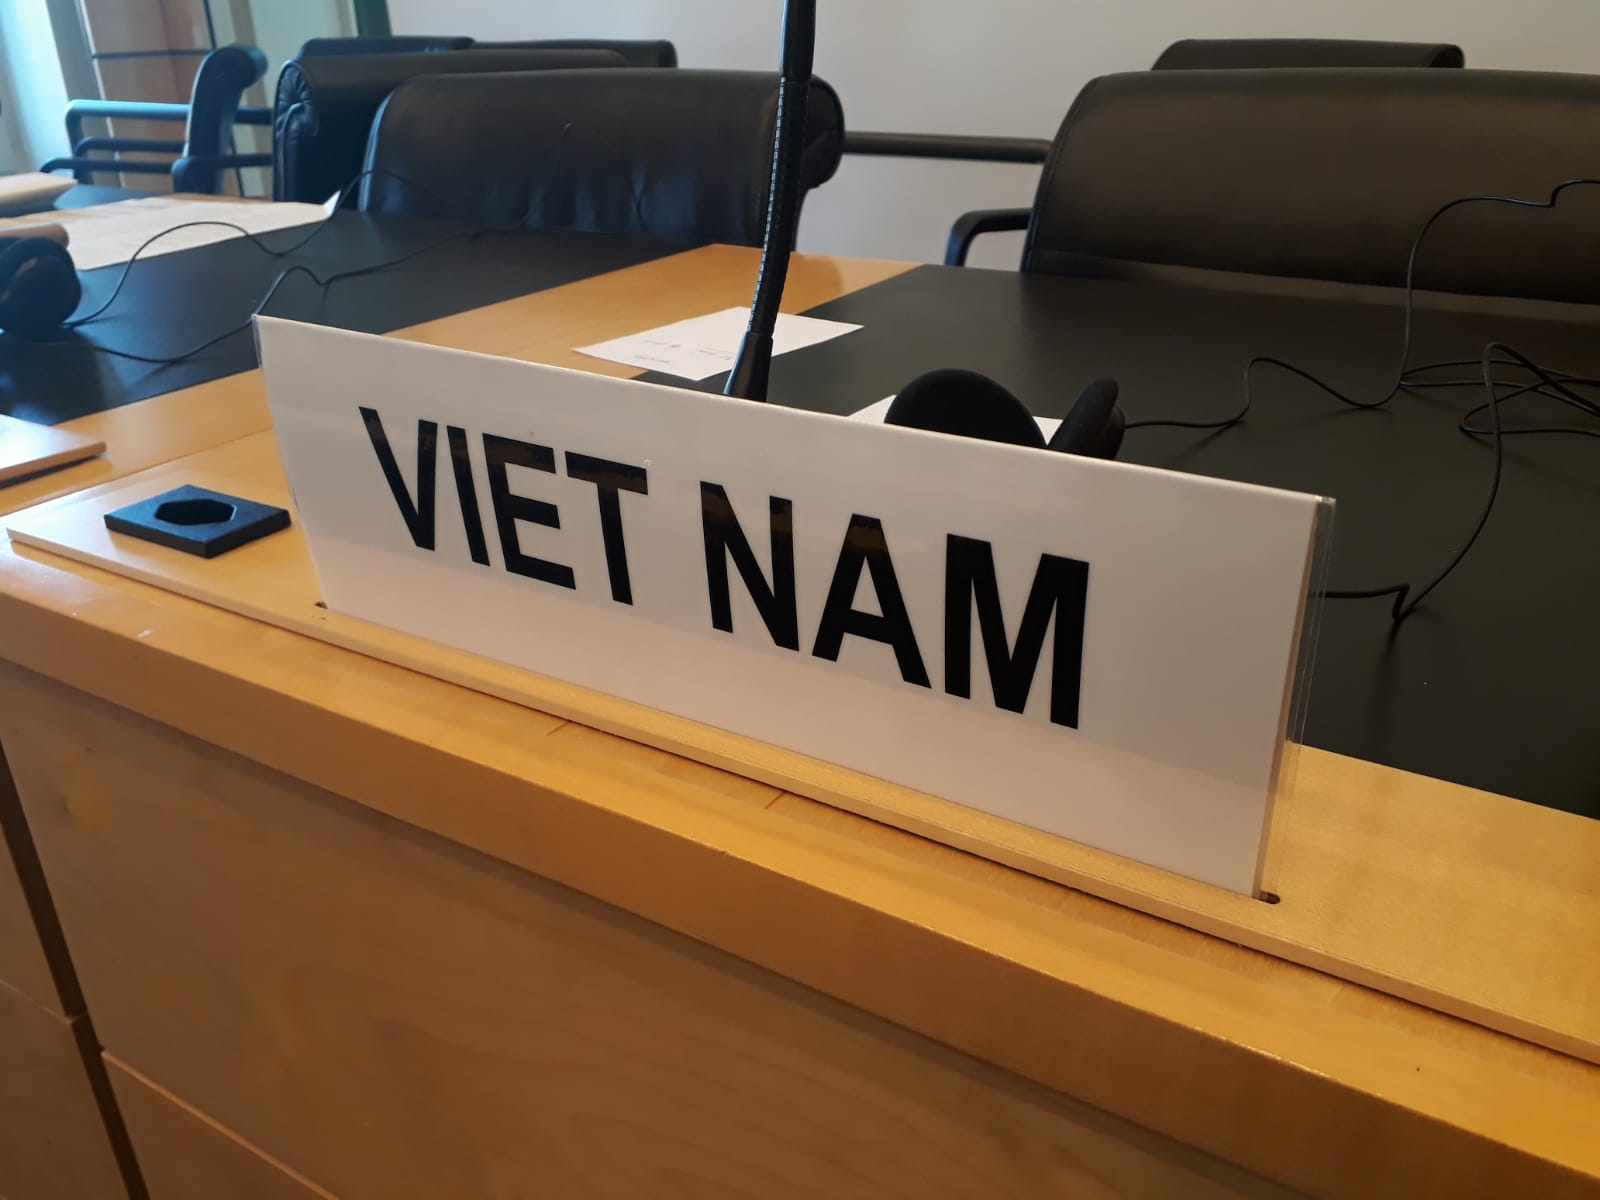 Viet Nam: Concerns over the lack of information on the ICCPR implementation in practice and restriction of fundamental freedoms